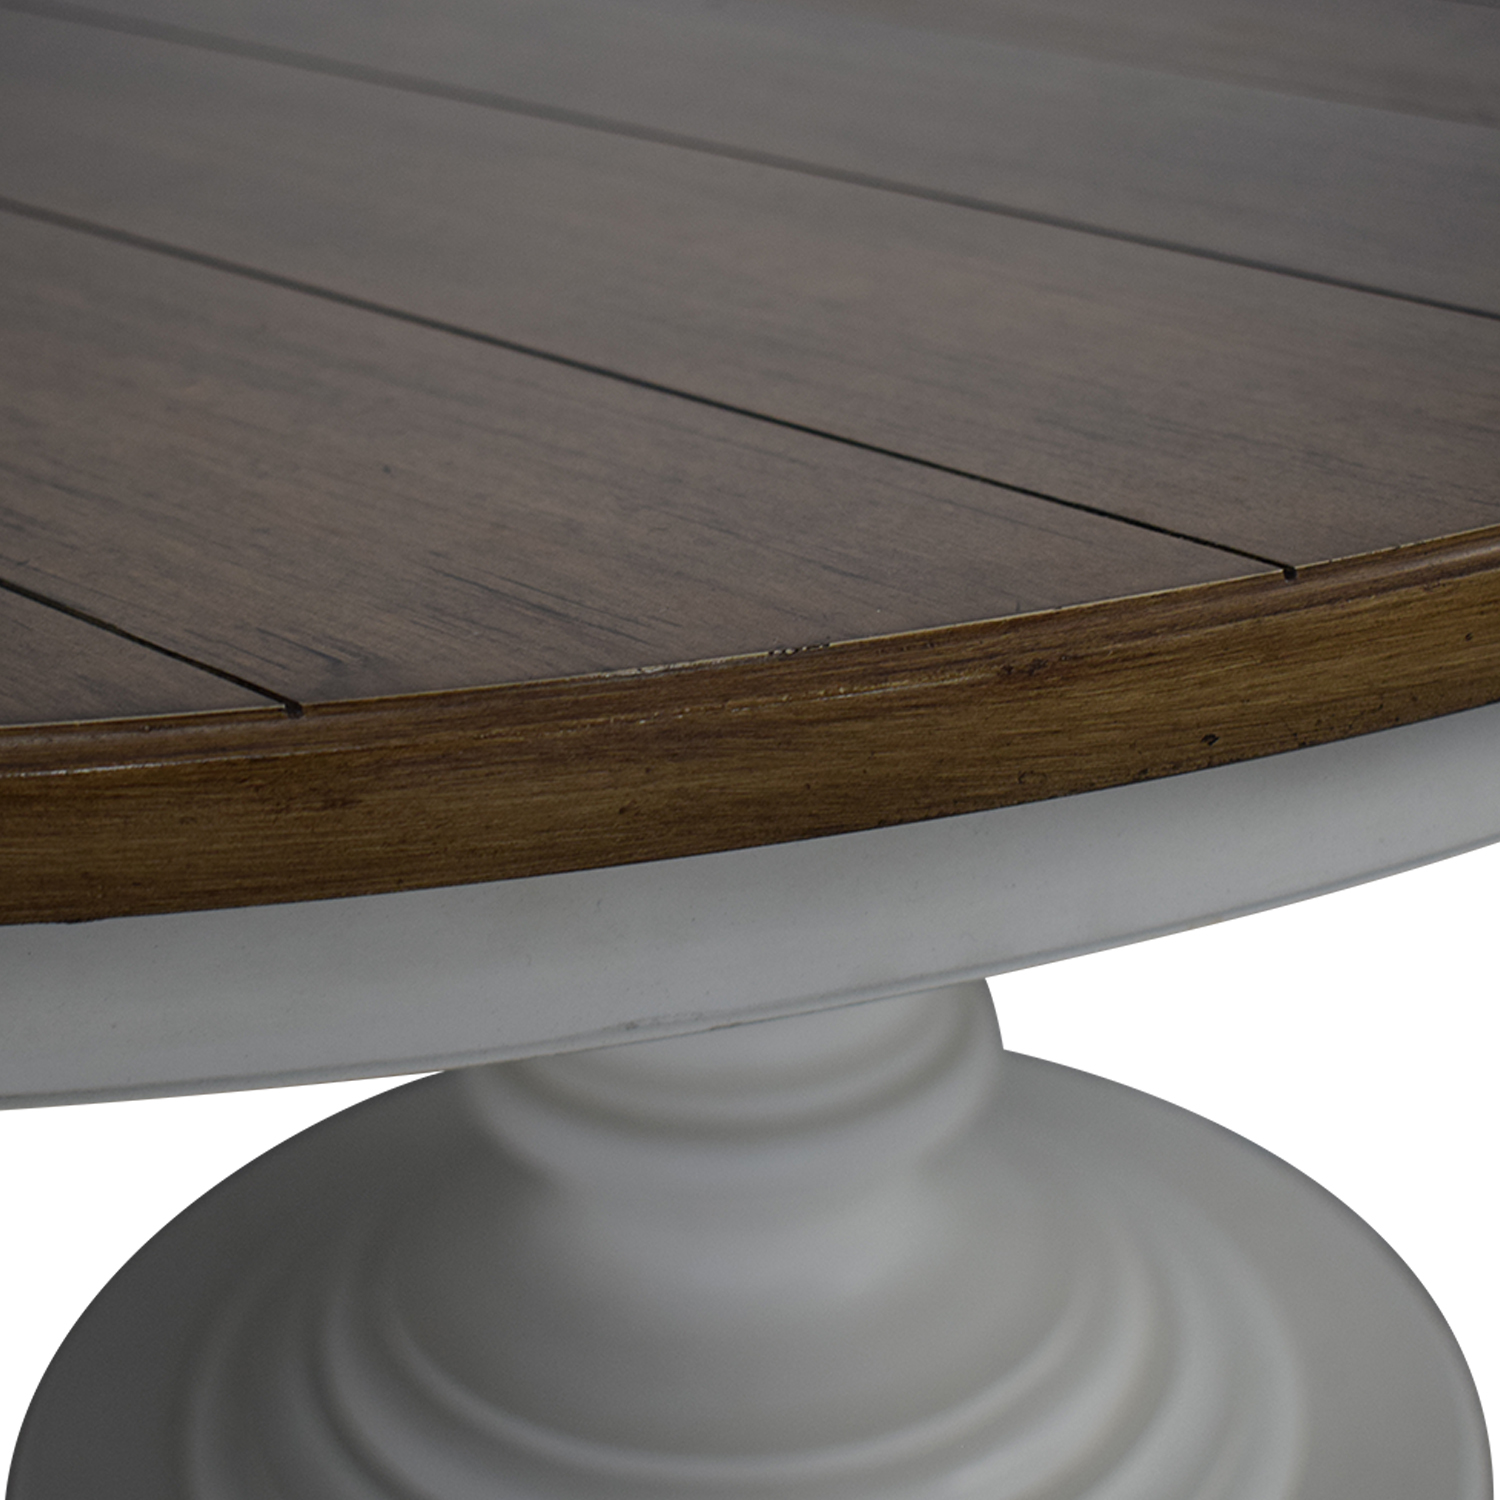 Macy's Macy's Sag Harbor Expandable Round Dining Pedestal Table used